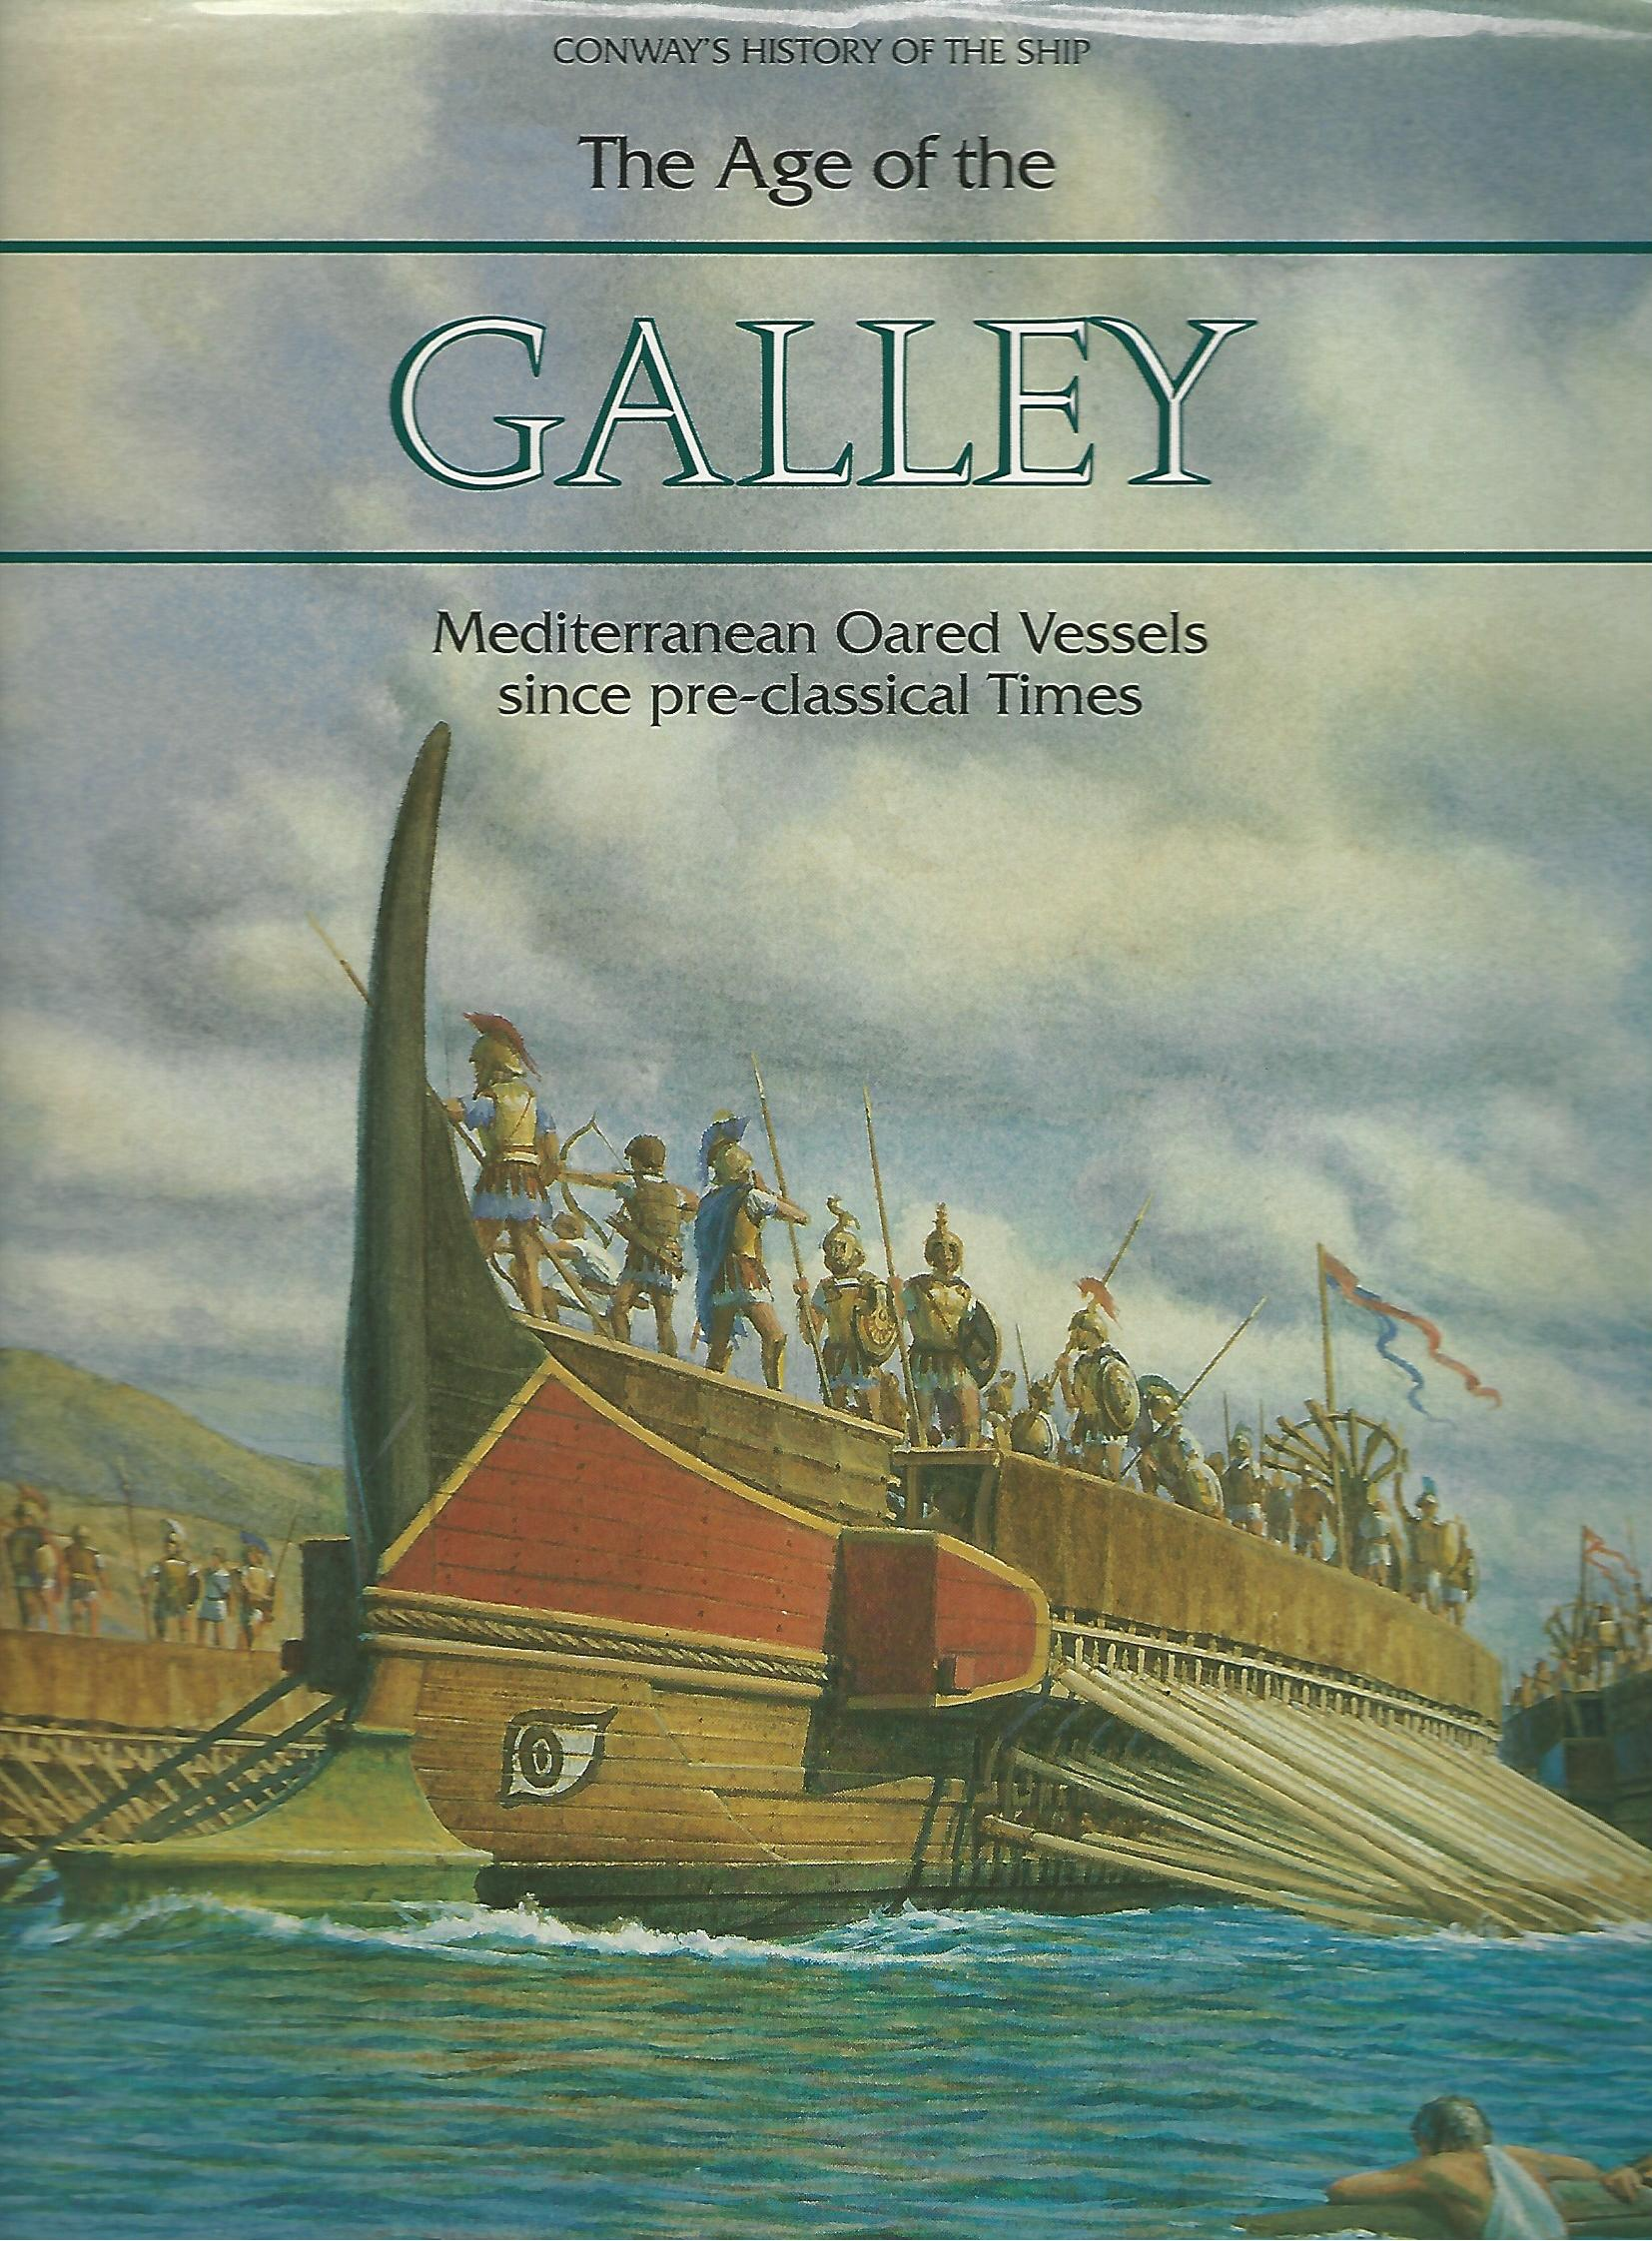 The Age of the Galley: Mediterranian Oared Vessels since pre-classical Times. (Conway's History of the Ship)